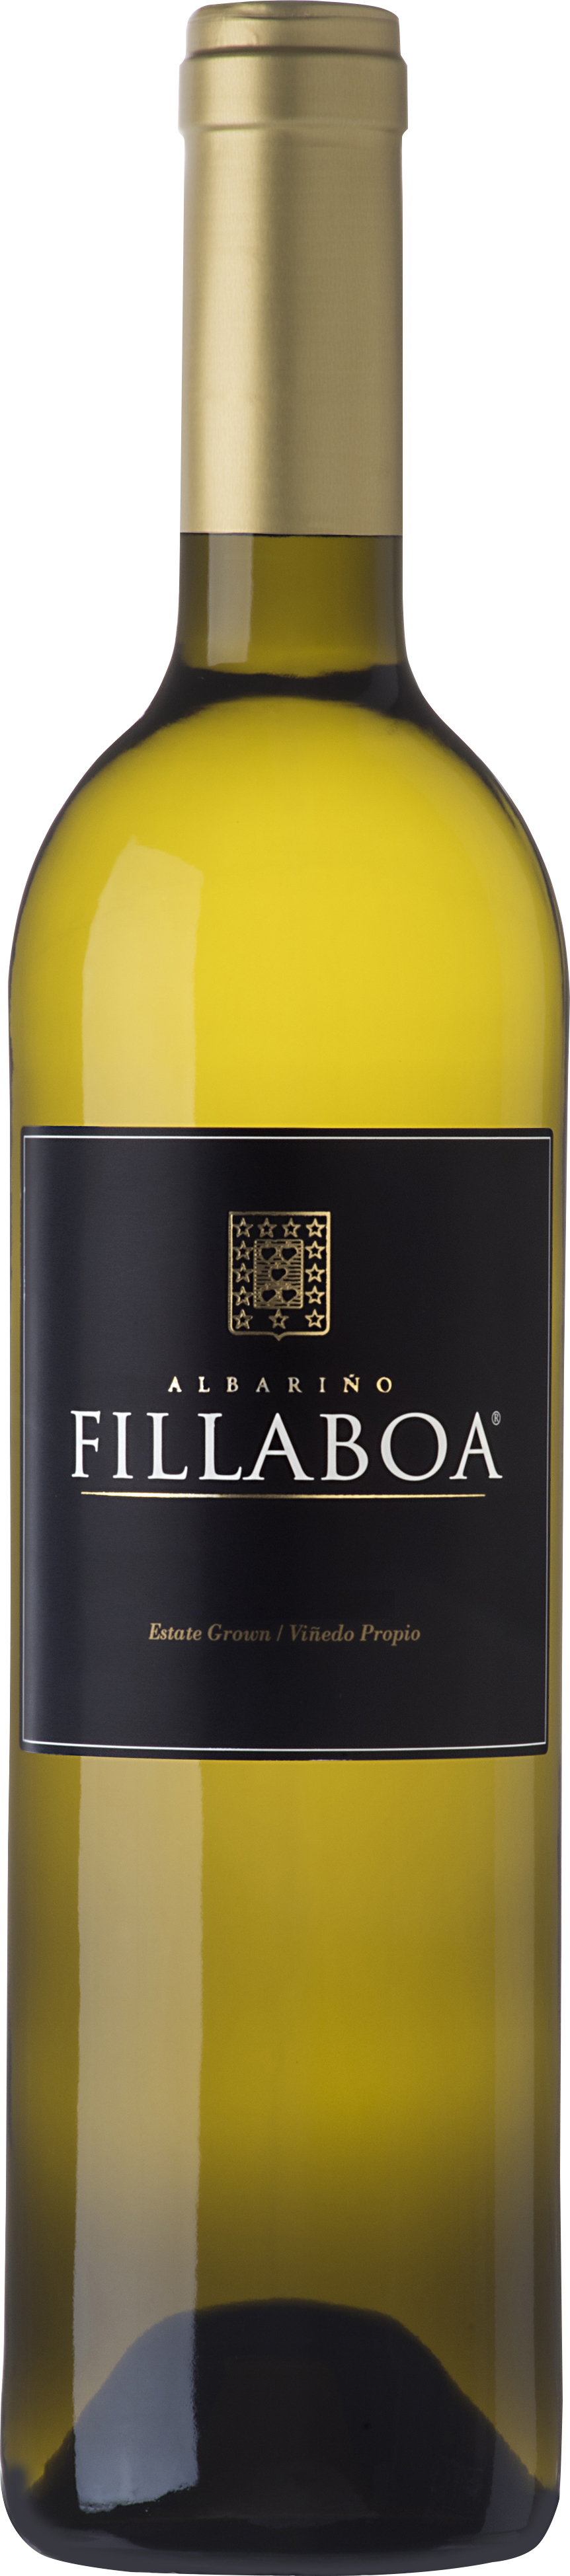 Fillaboa Albarino